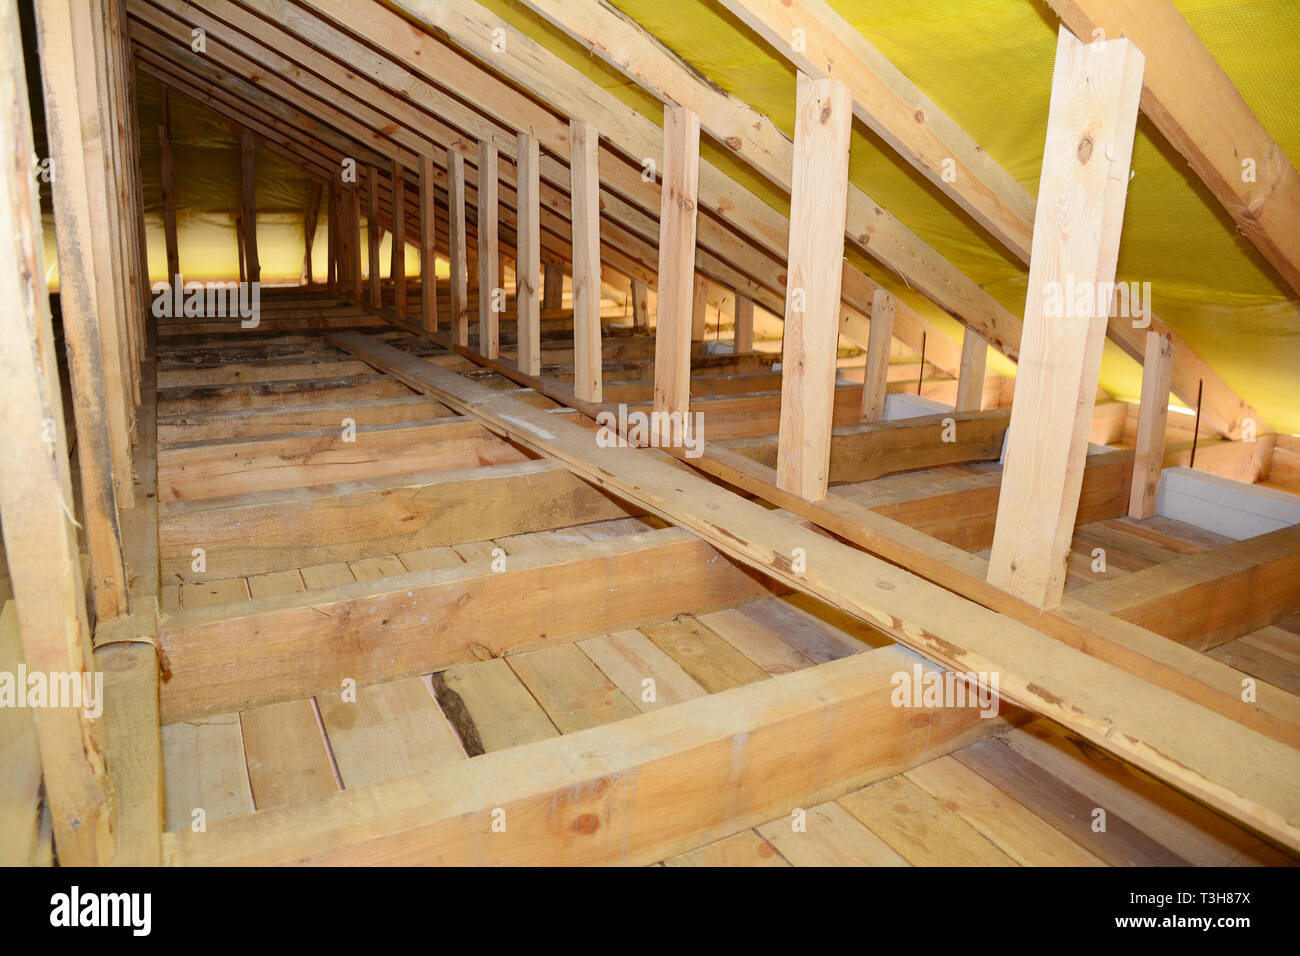 Roofing Construction Interior Wooden Roof Beams Frame House